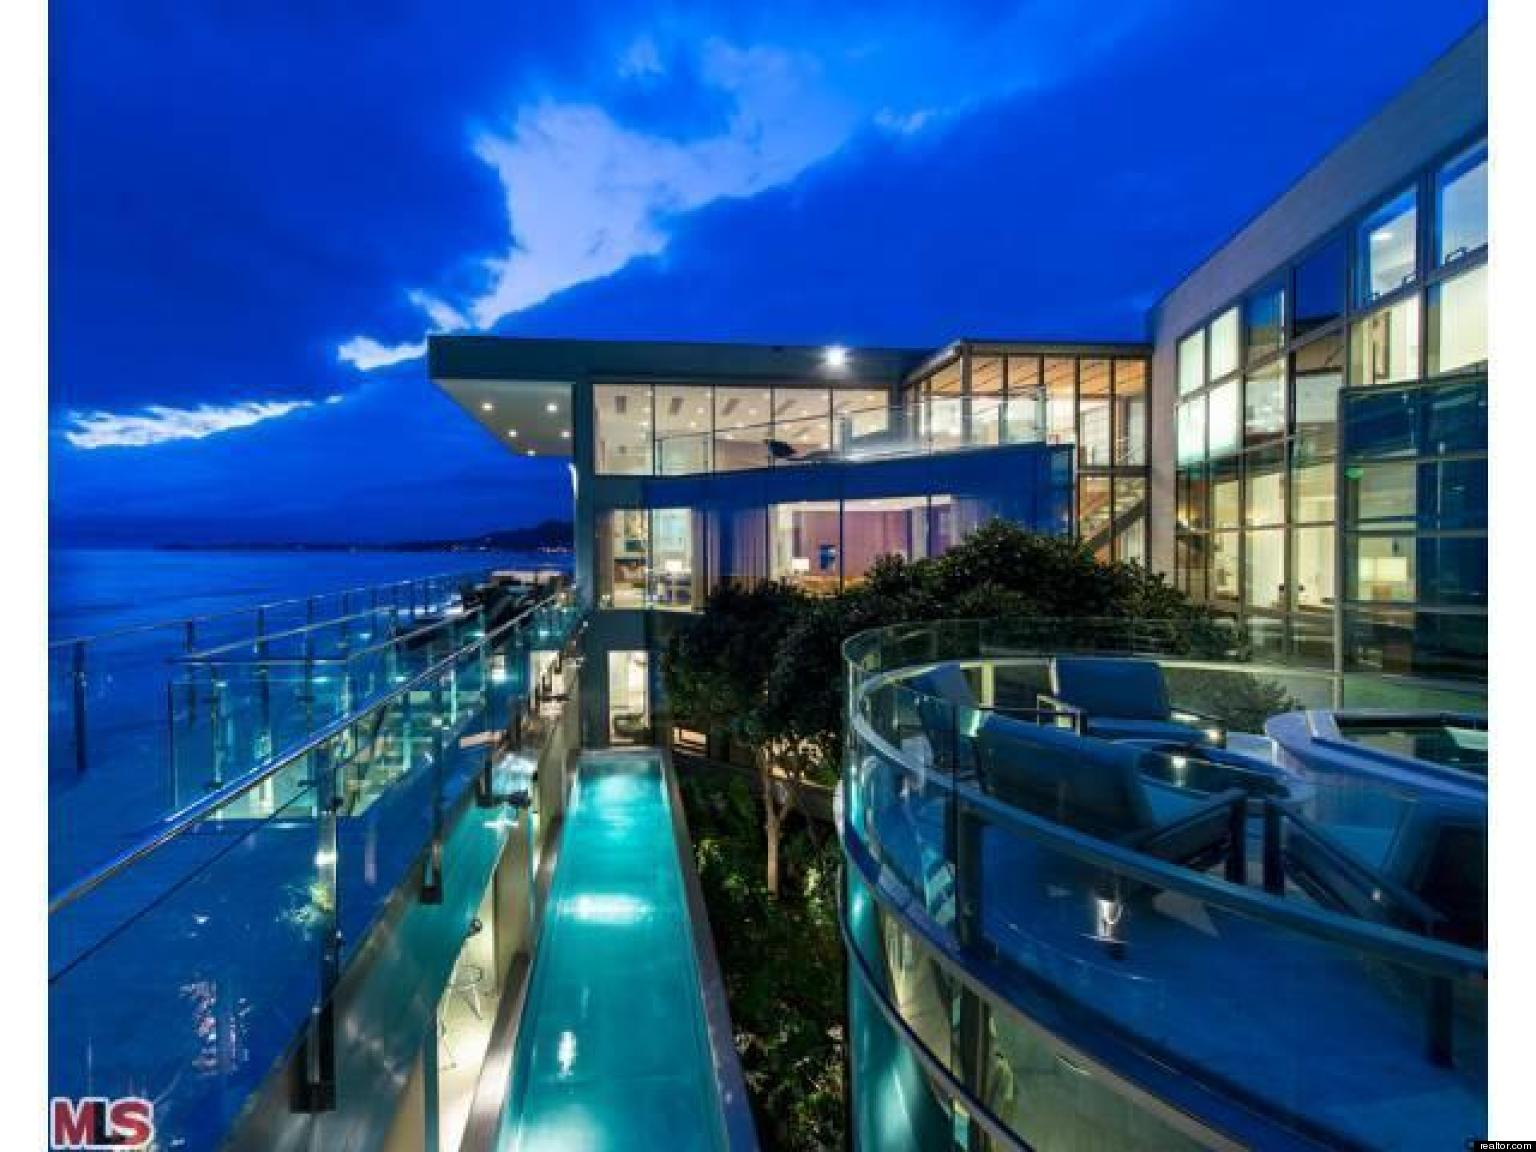 Malibu 39 s most expensive summer rentals huffpost for Malibu house rentals for weddings